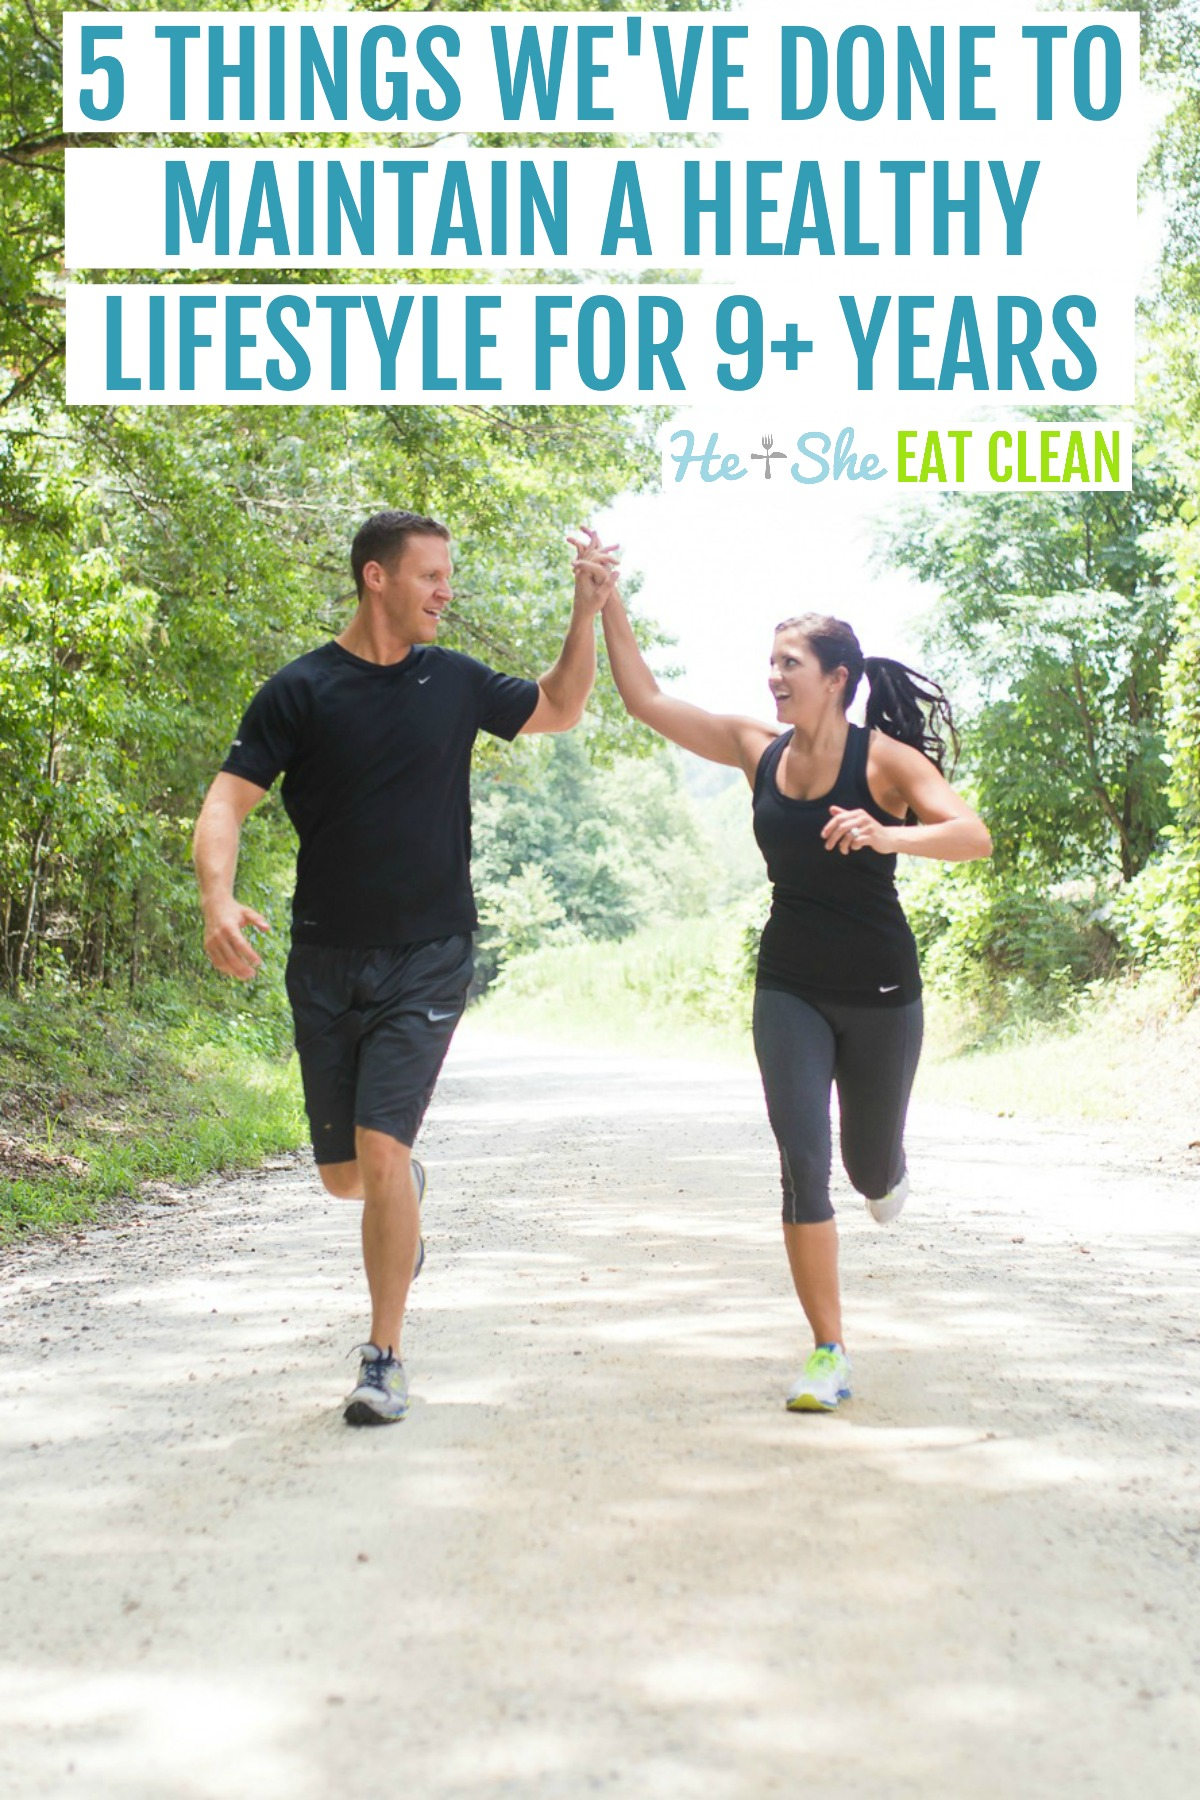 couple running while high-fiving each other with text that reads 5 things we've done to maintain a healthy lifestyle for over 9 years